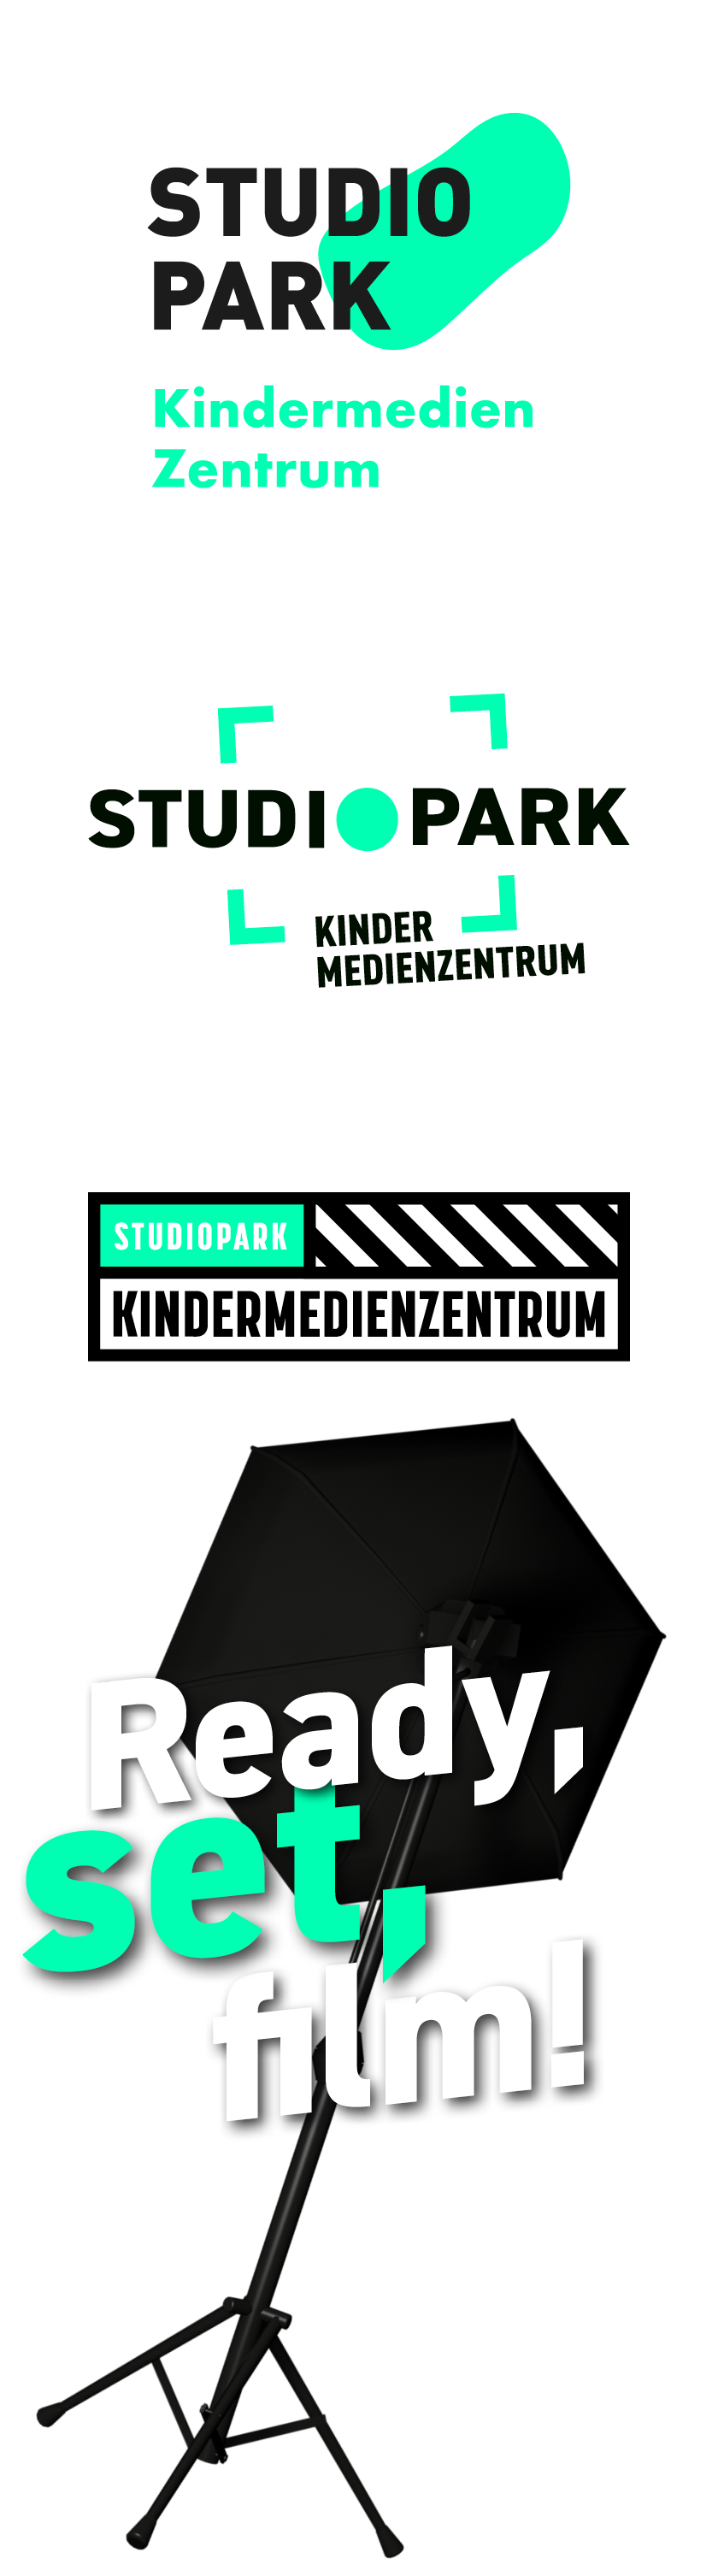 Samt&Seidel_Referenz_Studiopark_Kindermedienzentrum_Corporate_Design_08